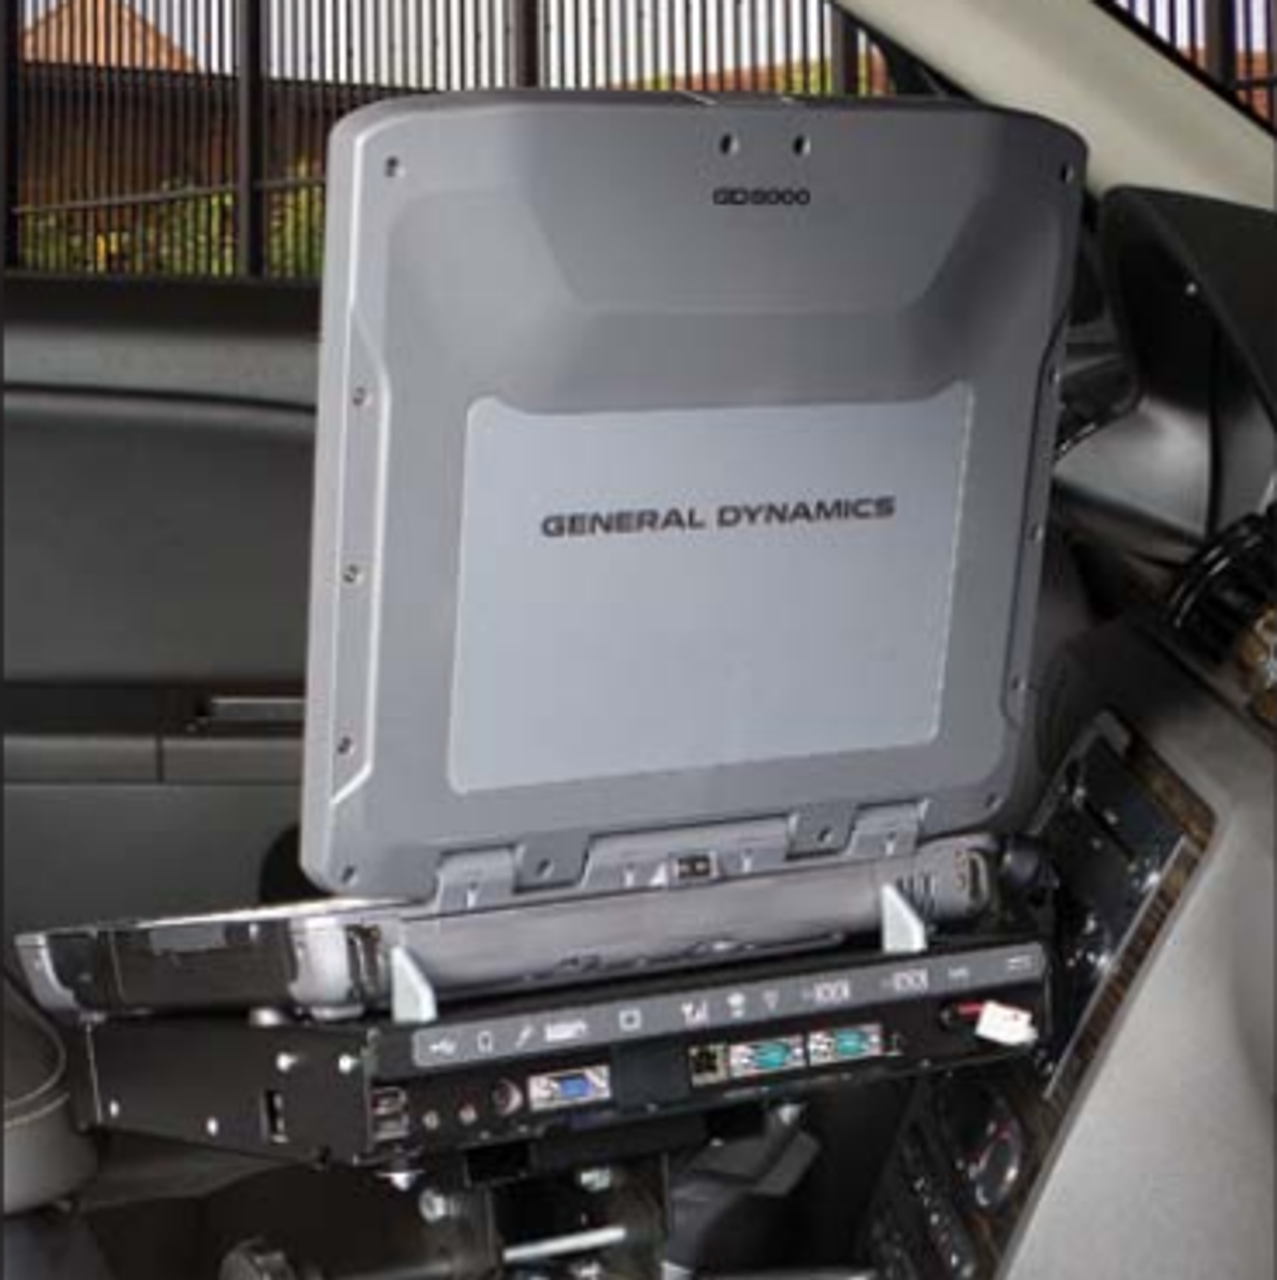 General Dynamics GD8000 Laptop Computer Docking Station